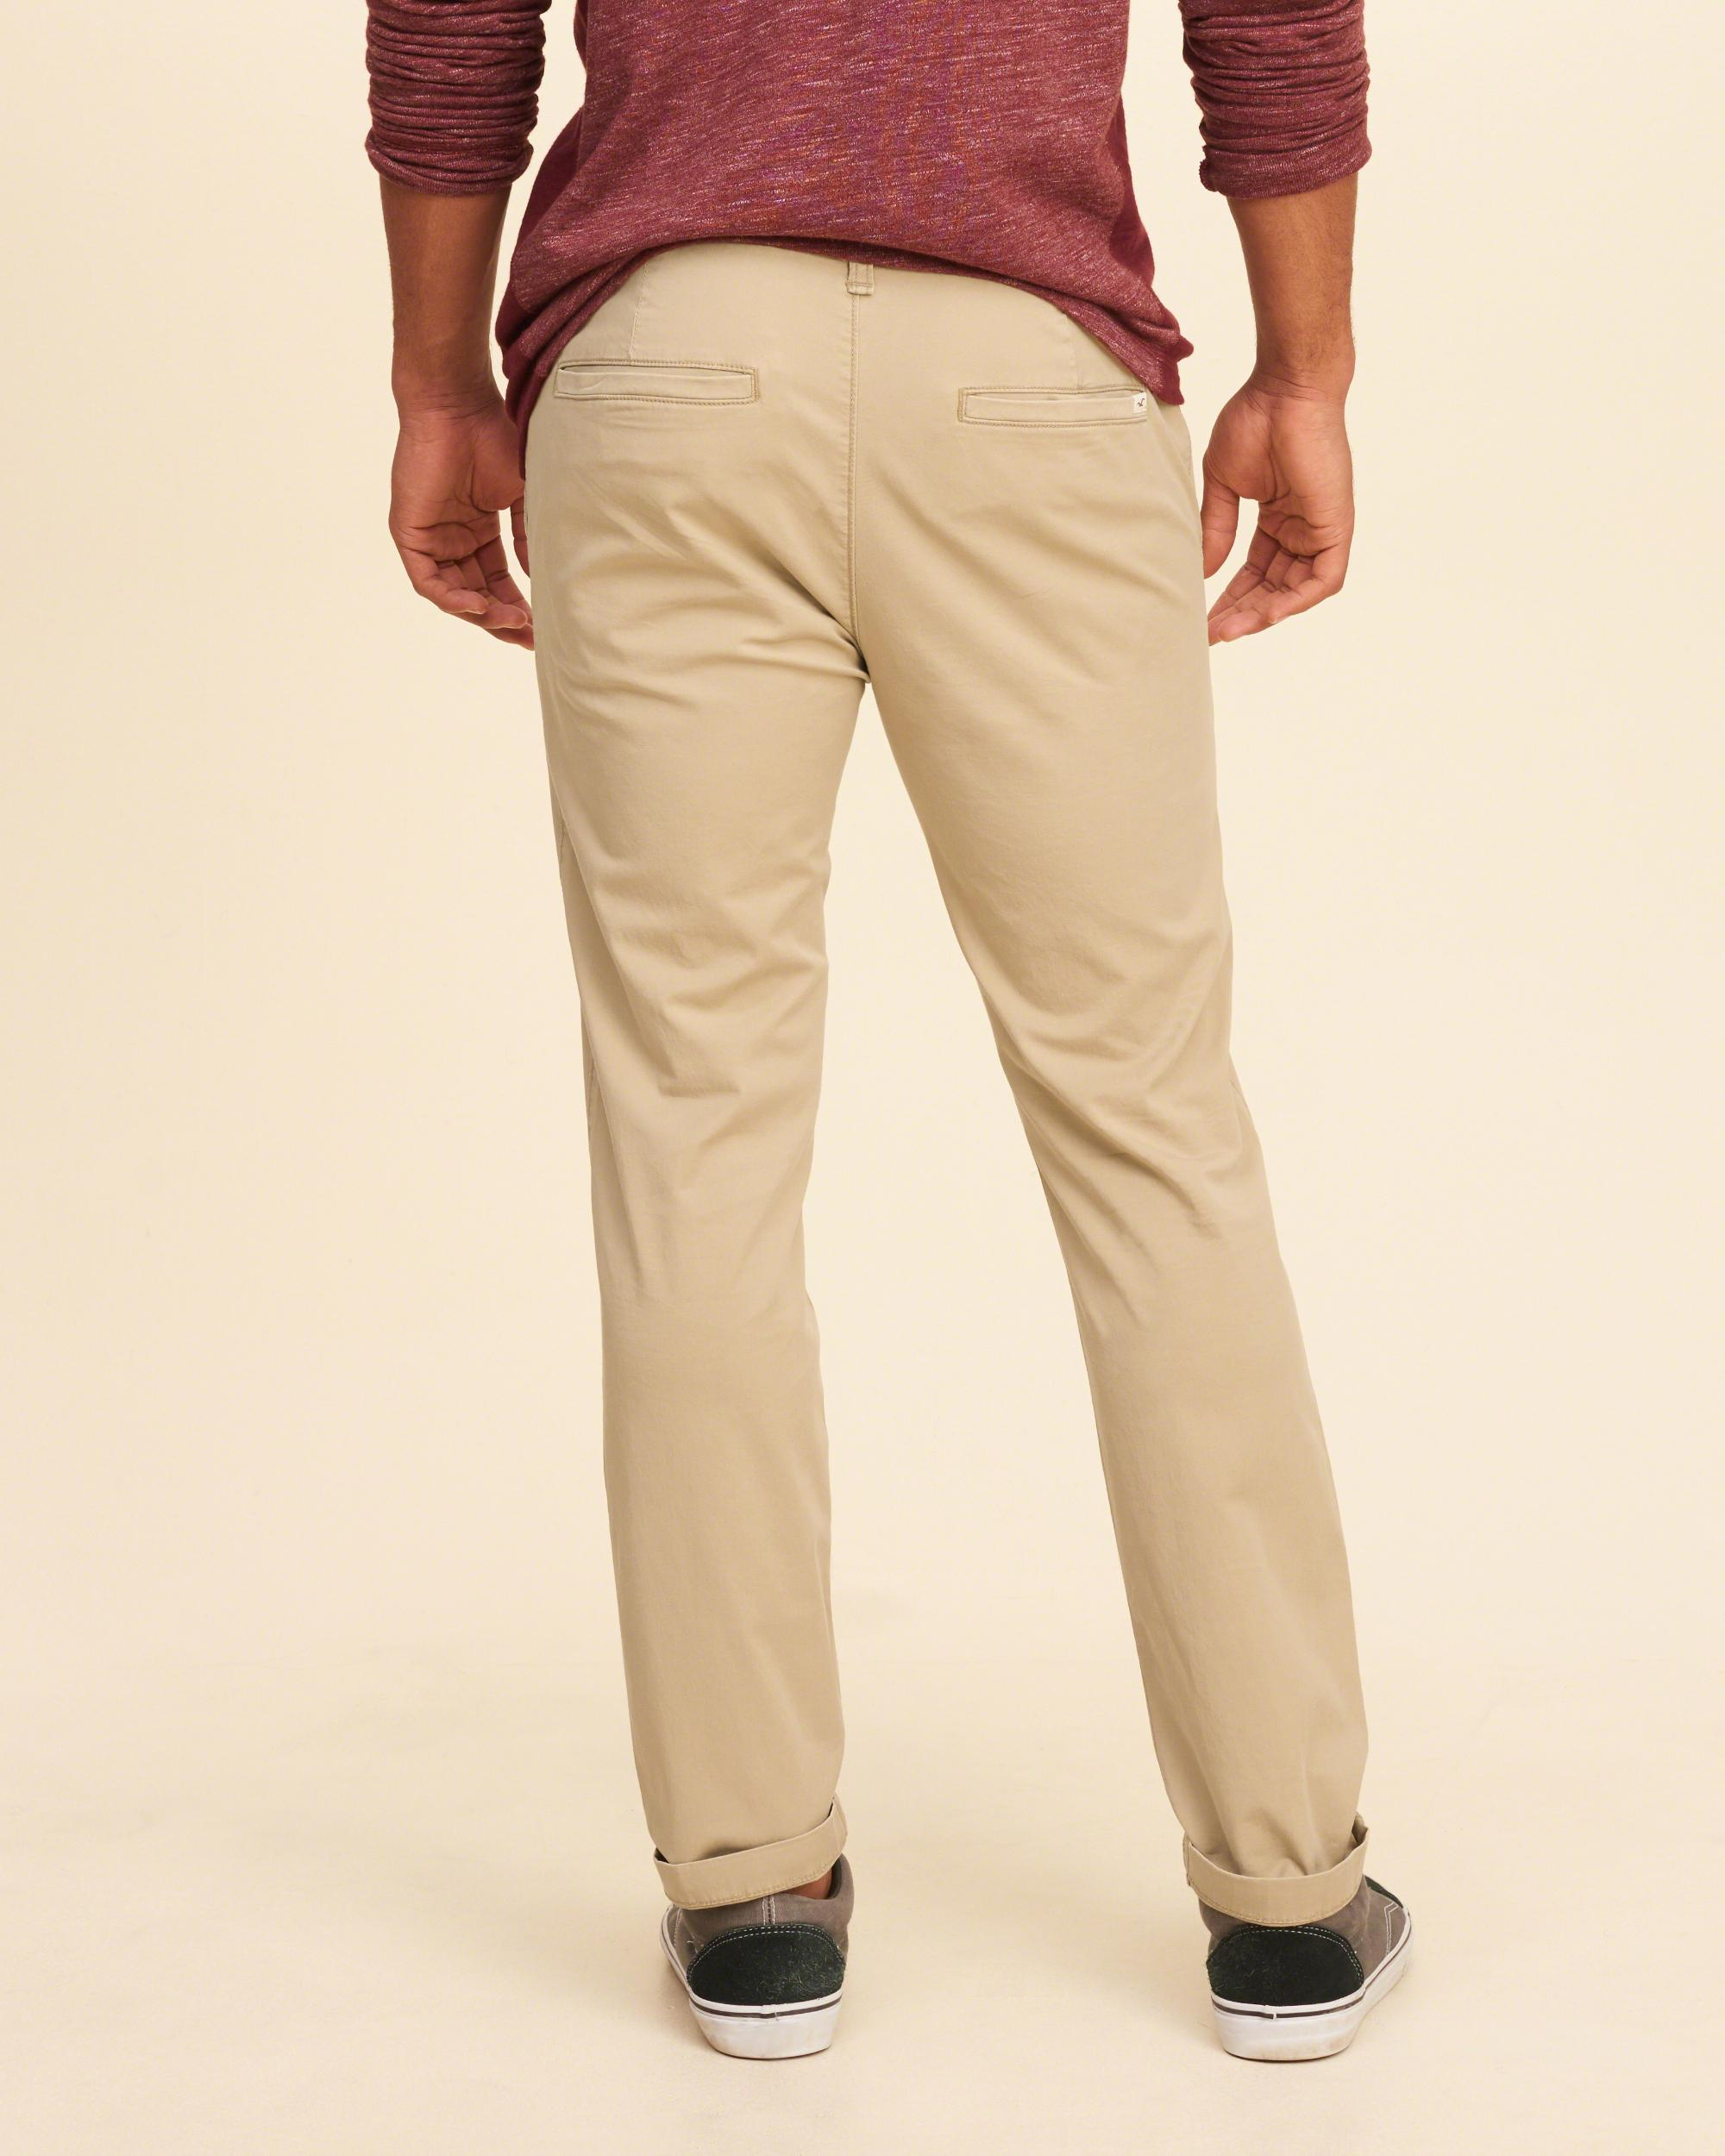 Hollister Cotton Skinny Chinos in Light Khaki (Natural) for Men